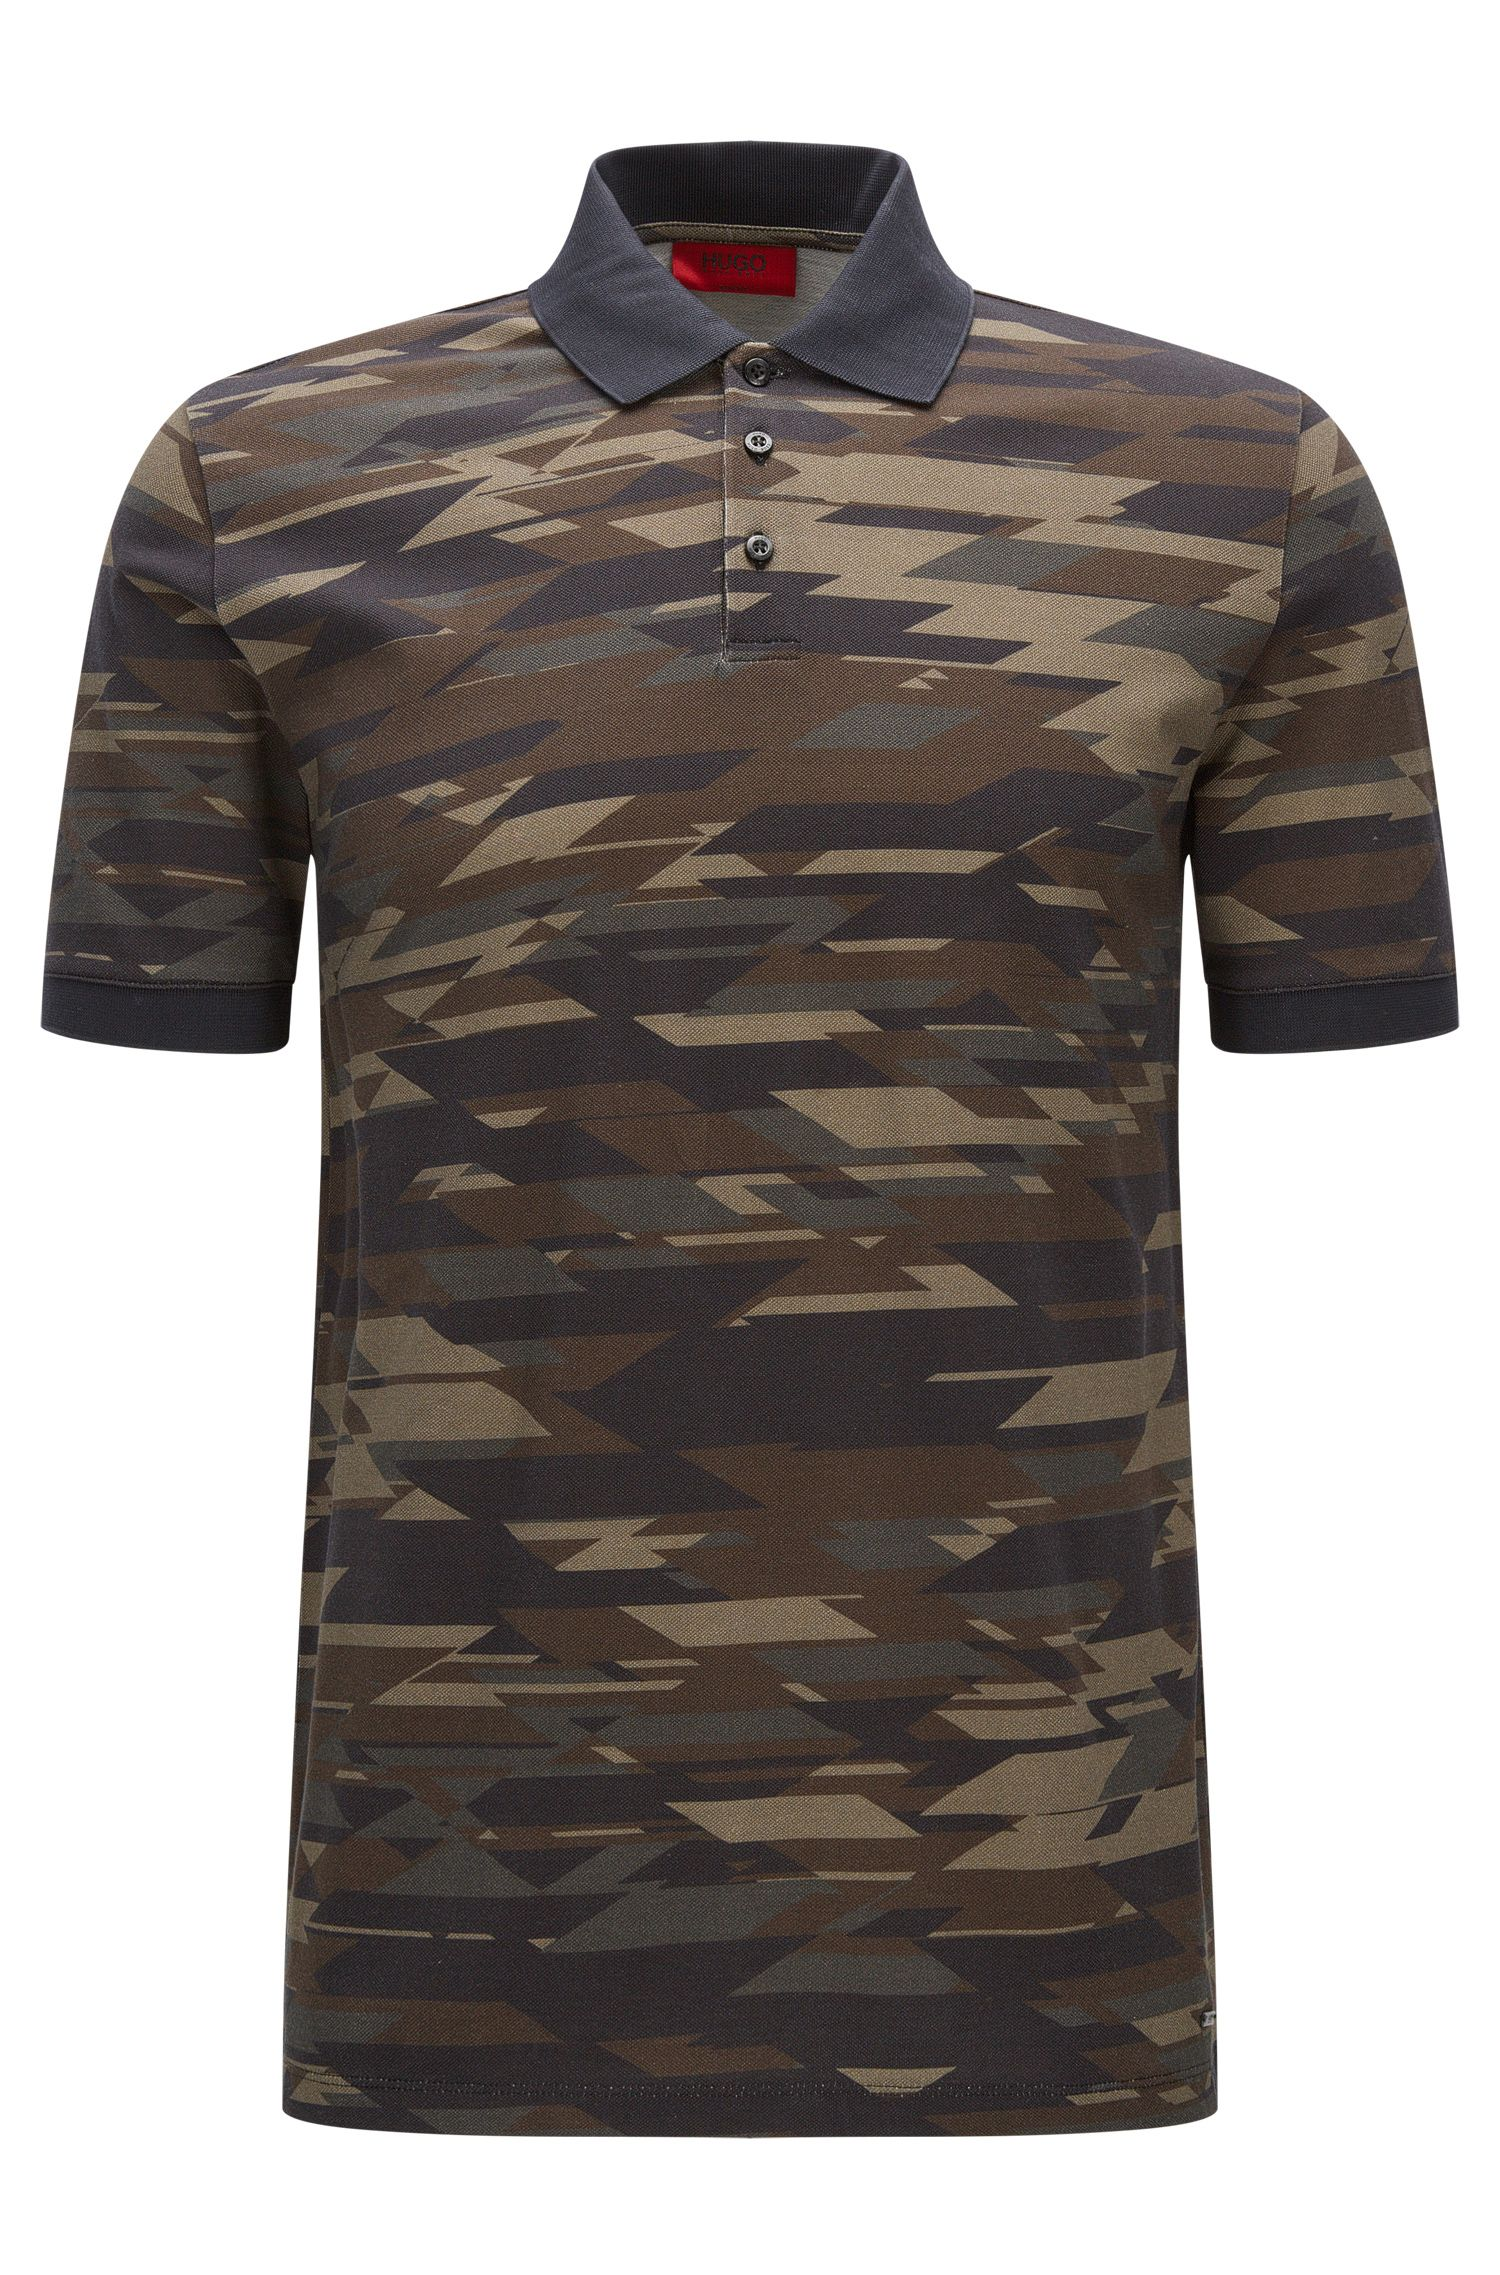 Camouflage Piqué Cotton Polo Shirt, Regular Fit | Dacoby, Dark Green